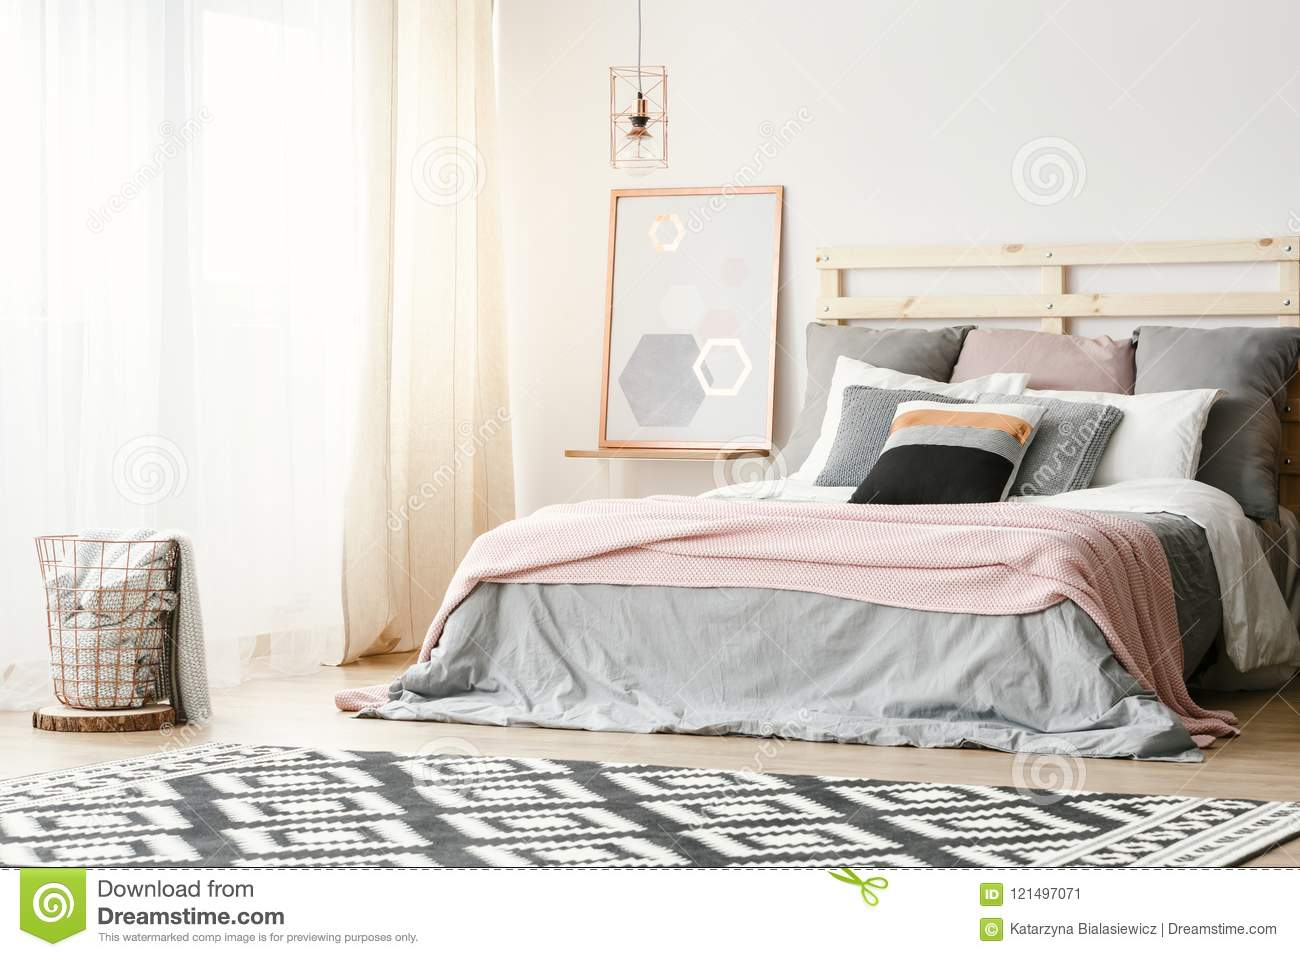 Pink blanket on grey bed in modern bedroom interior with poster